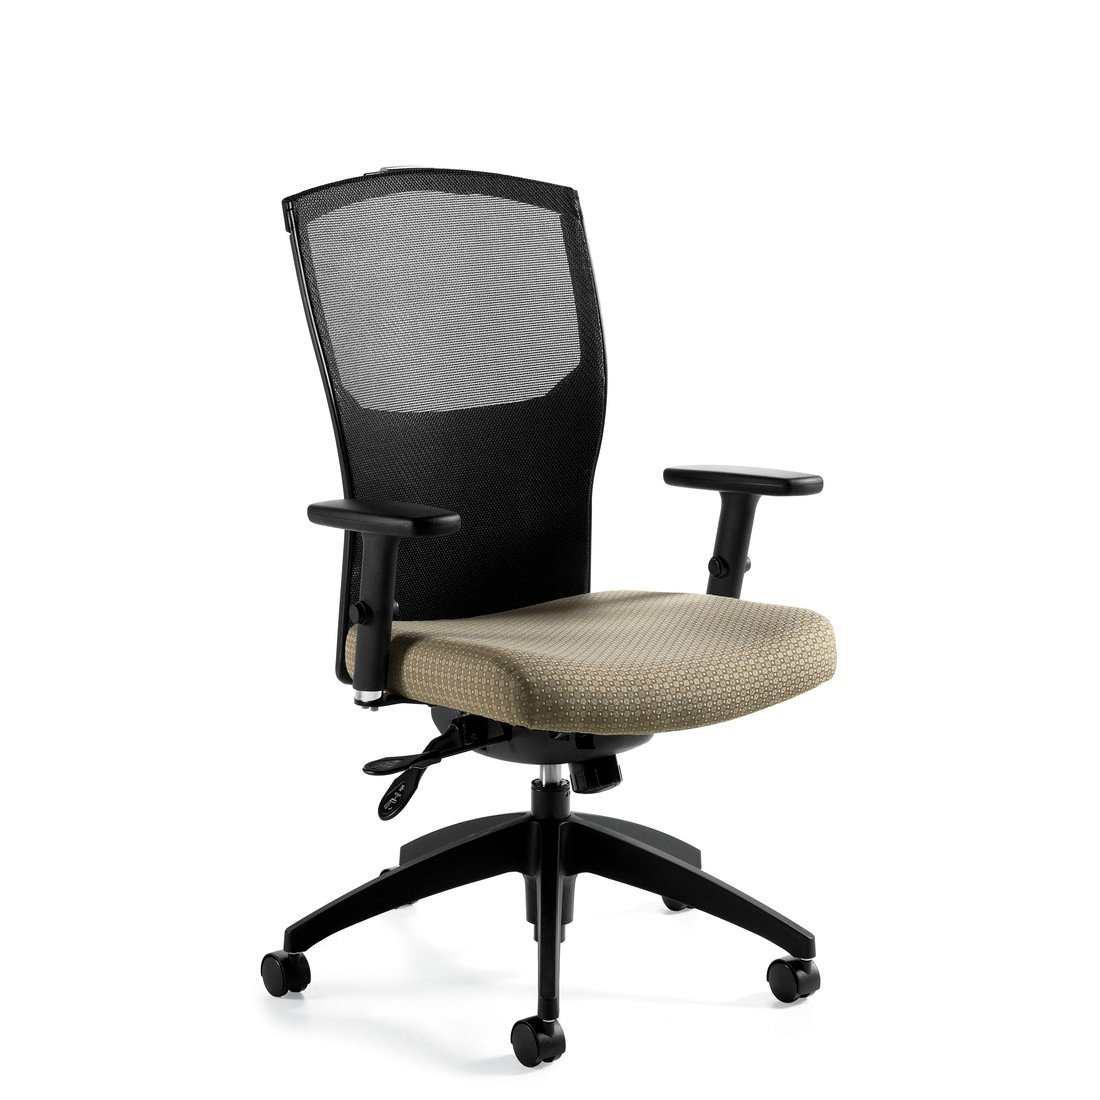 Alero mesh high back multi-tilter chair, model 1961-3. This chair has been placed on a white background.